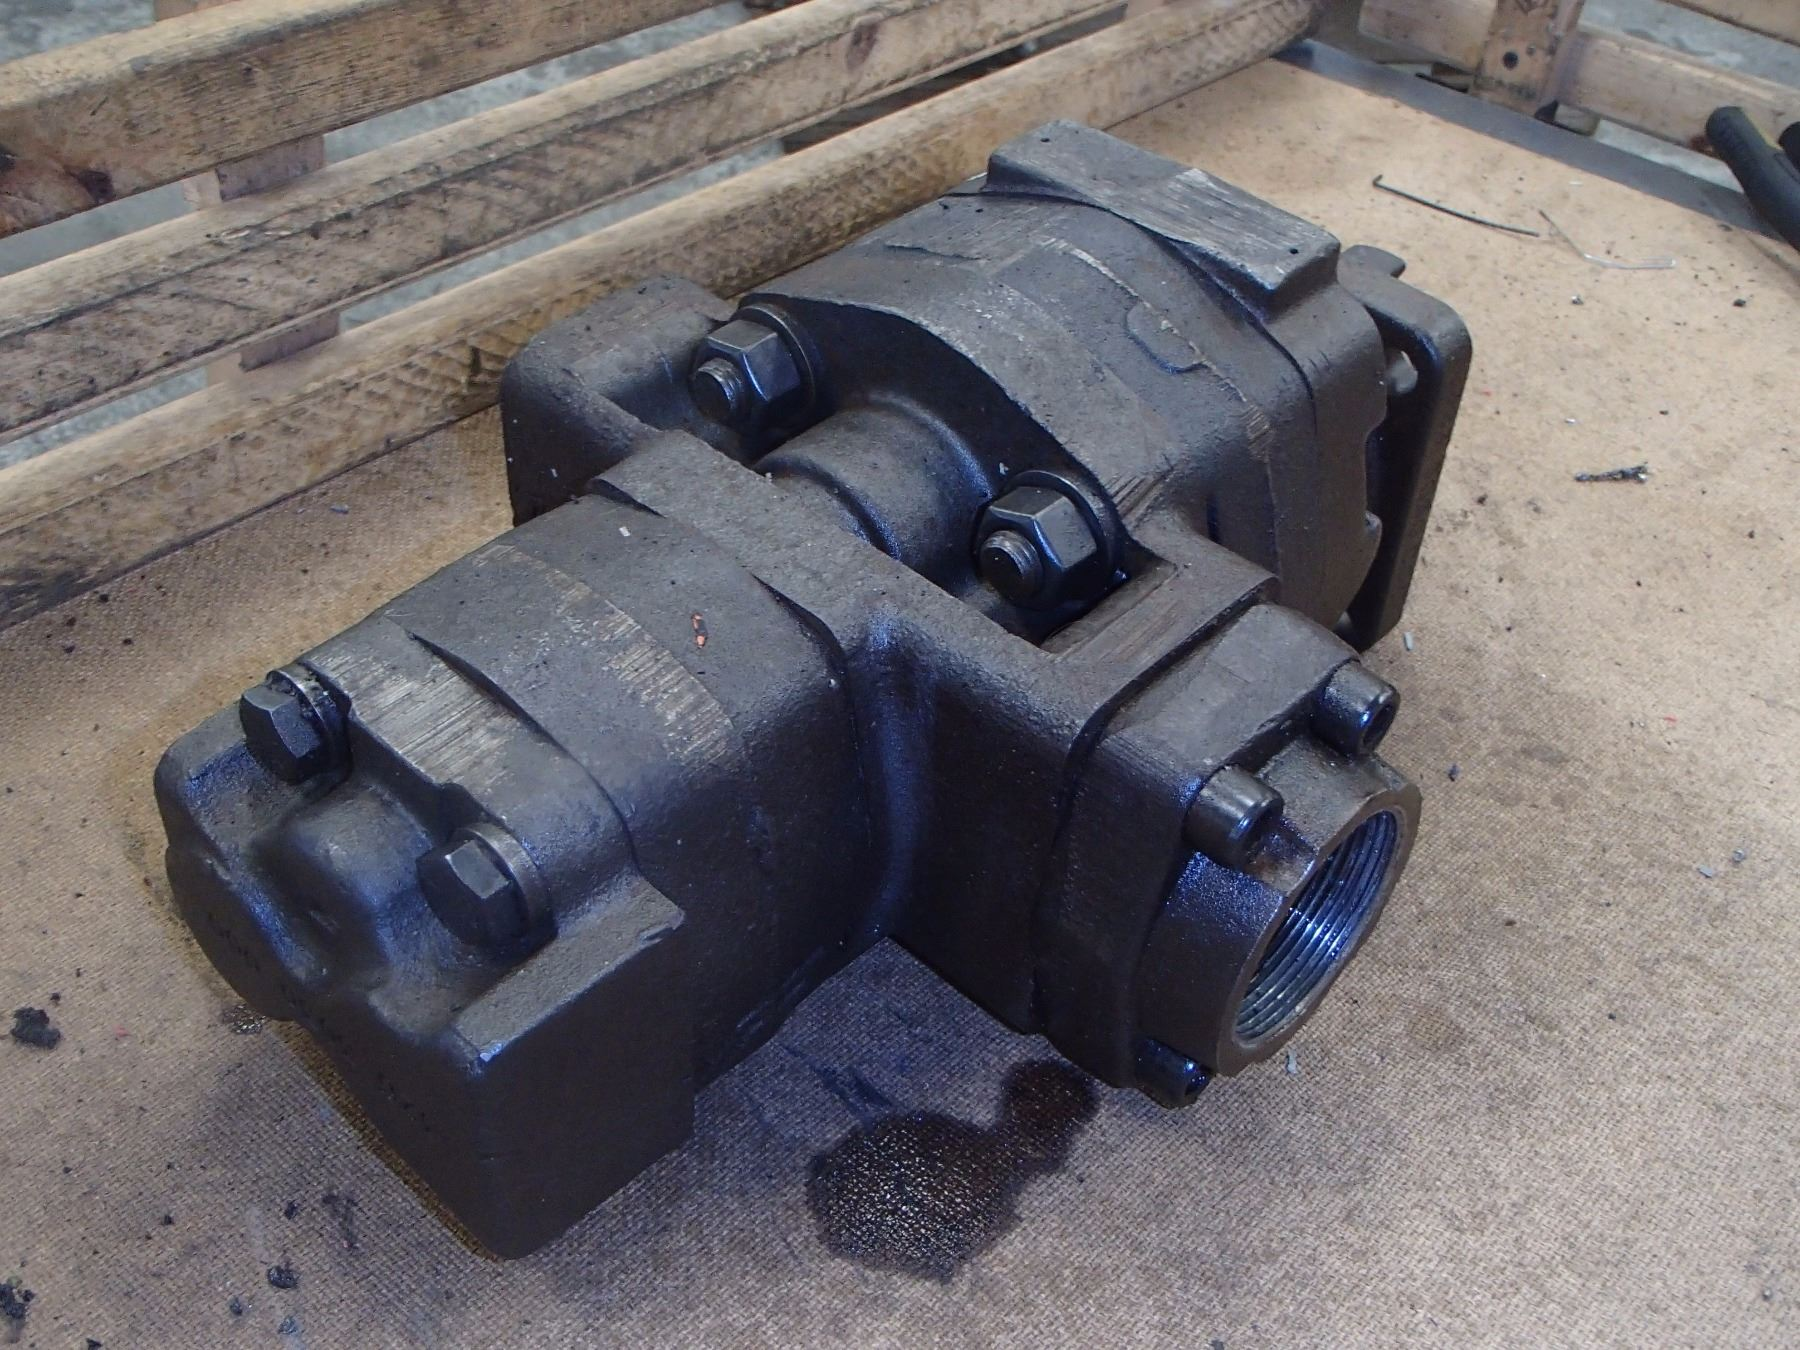 Hydraulic Vane Pumps: Types, Uses And Tips For Their Operation